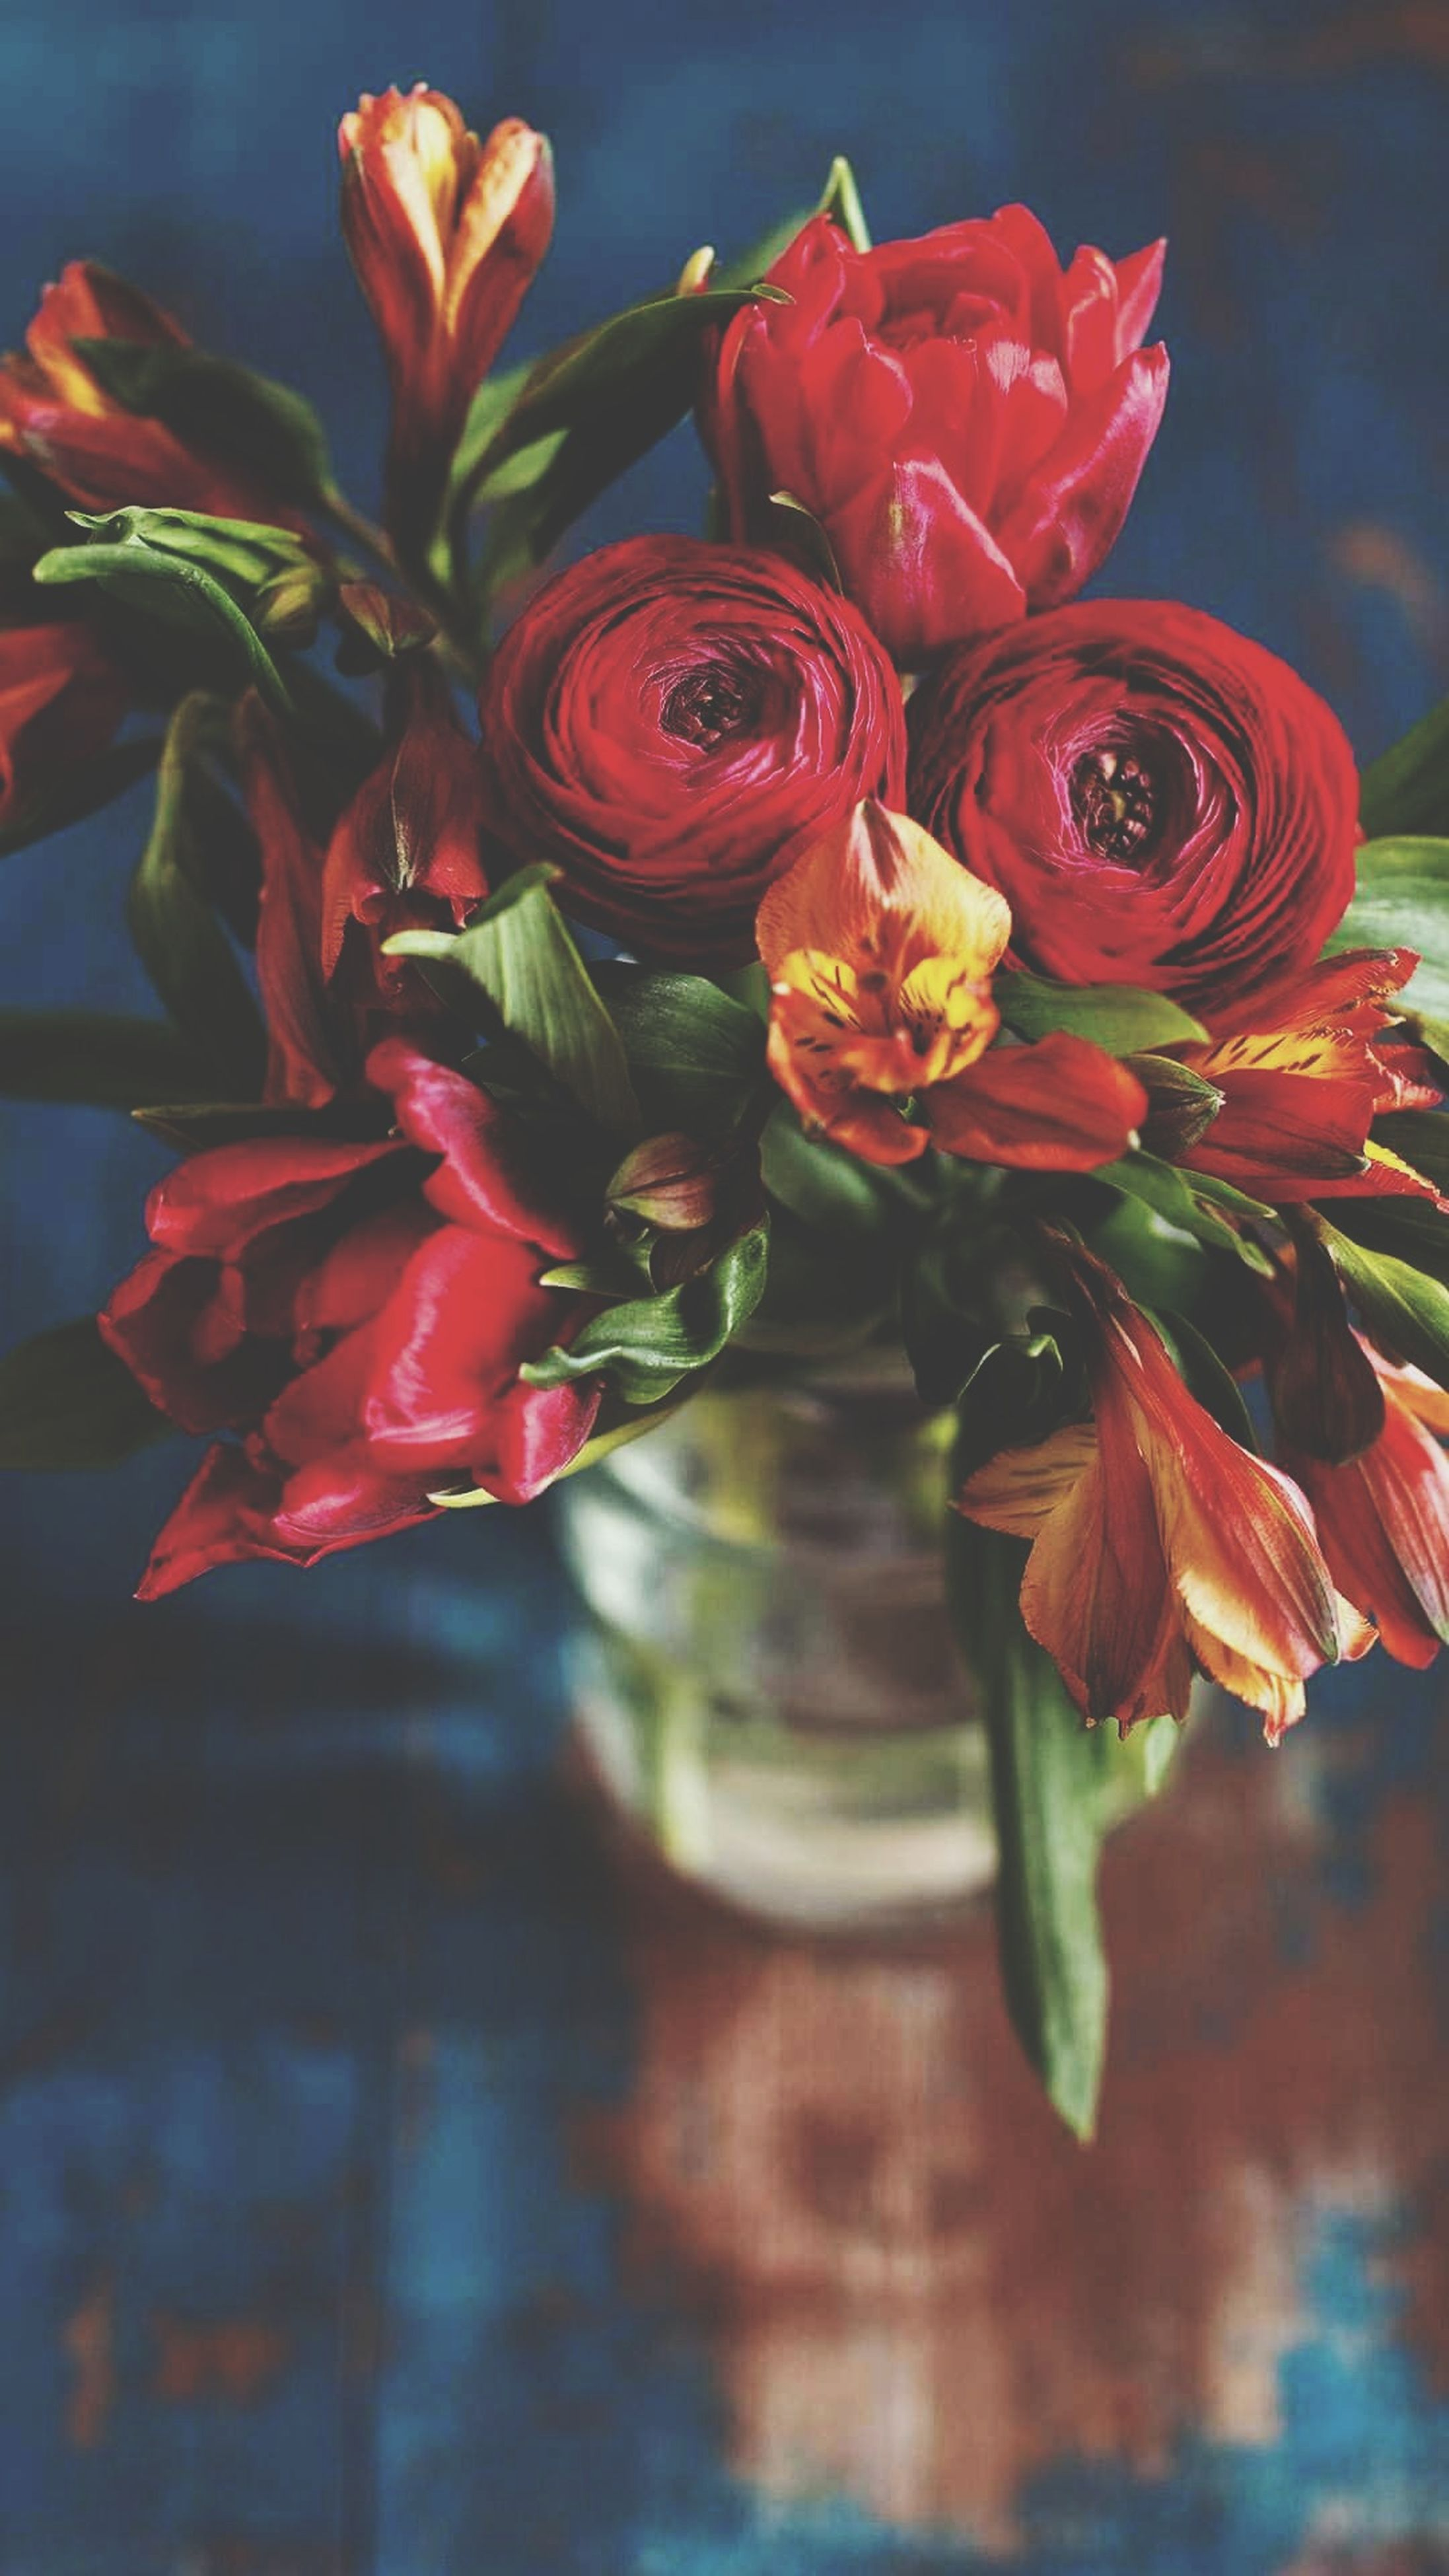 flower, petal, beauty in nature, no people, freshness, fragility, bouquet, flower head, nature, vase, close-up, red, indoors, day